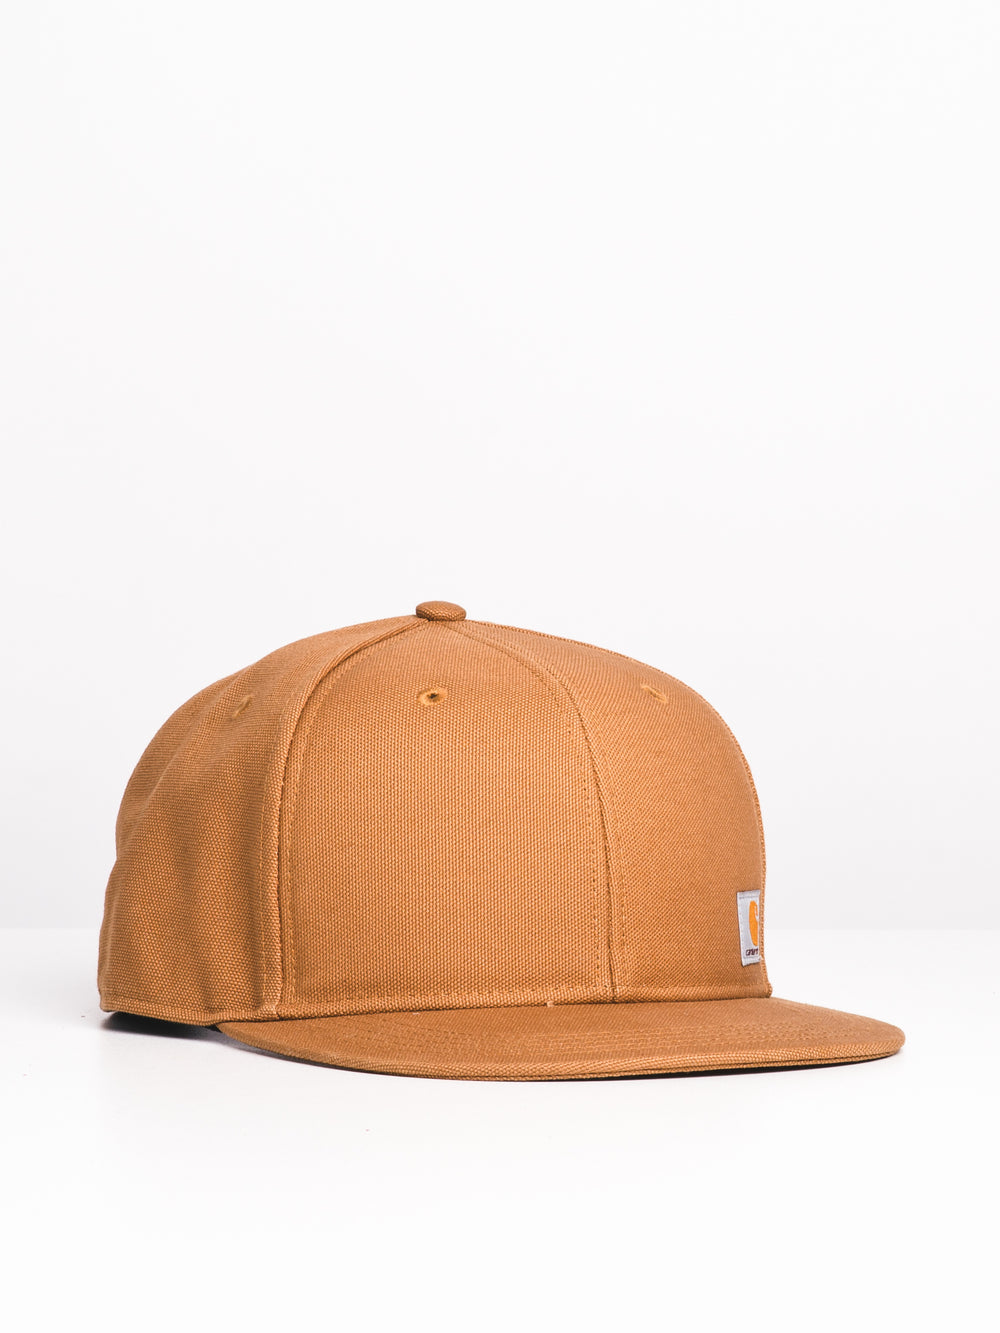 ASHLAND CAP - CARHARTT BROWN